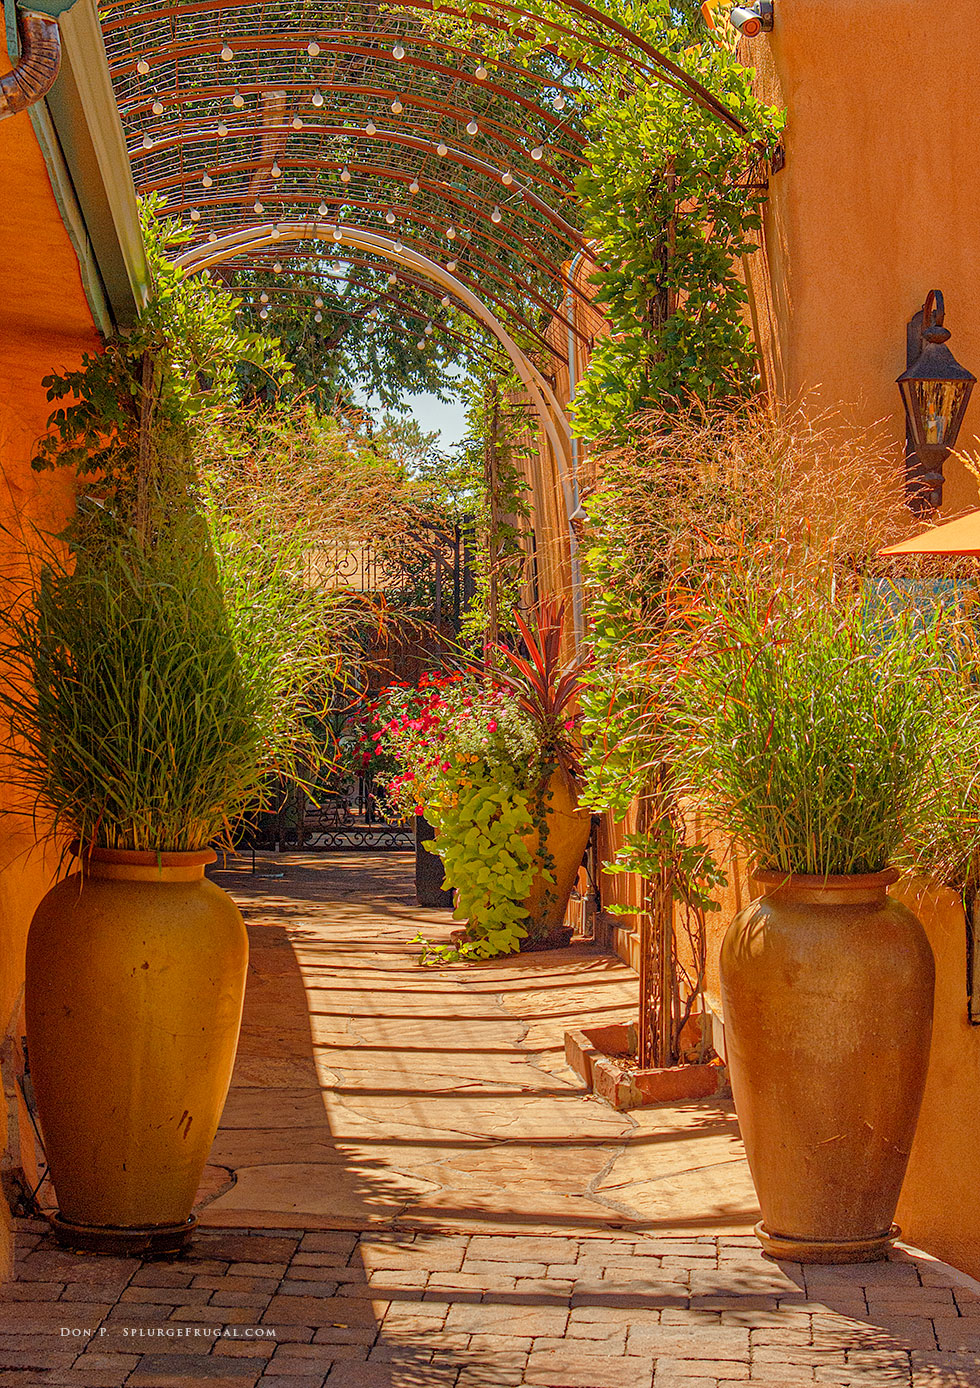 Santa Fe, New Mexico is America's Paris - Inn of the Five Graces